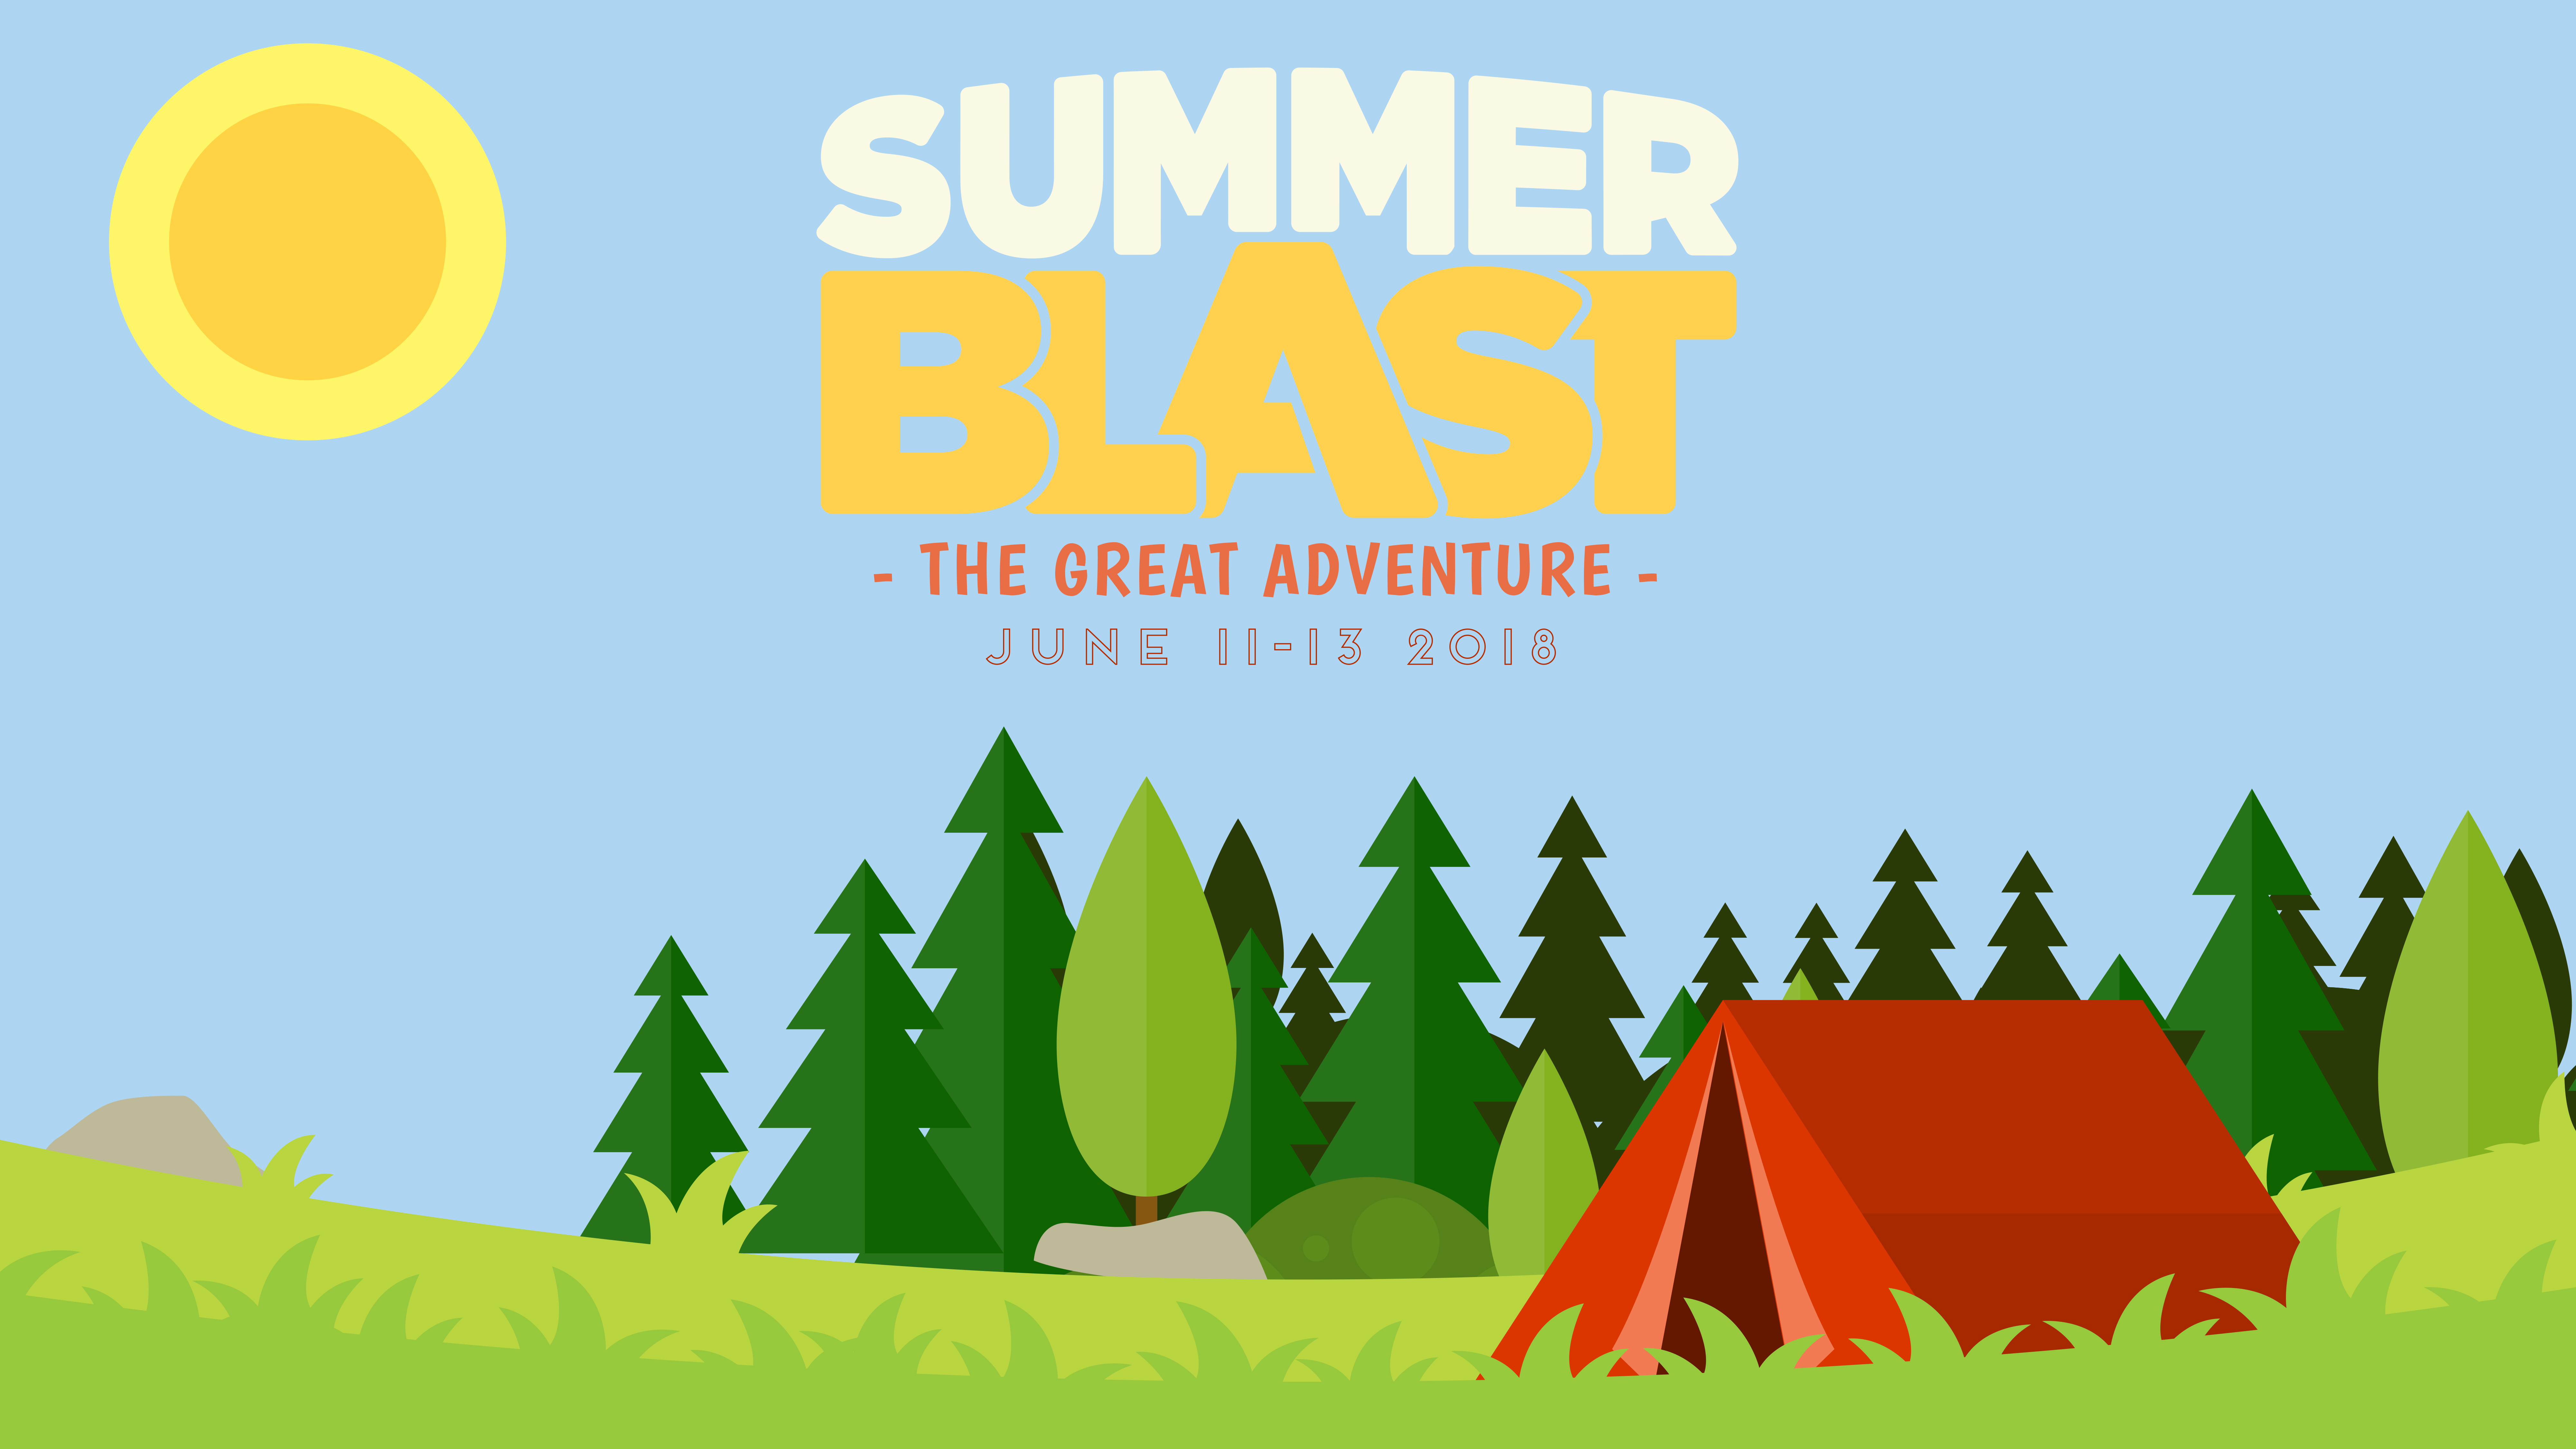 Summer blast final updated